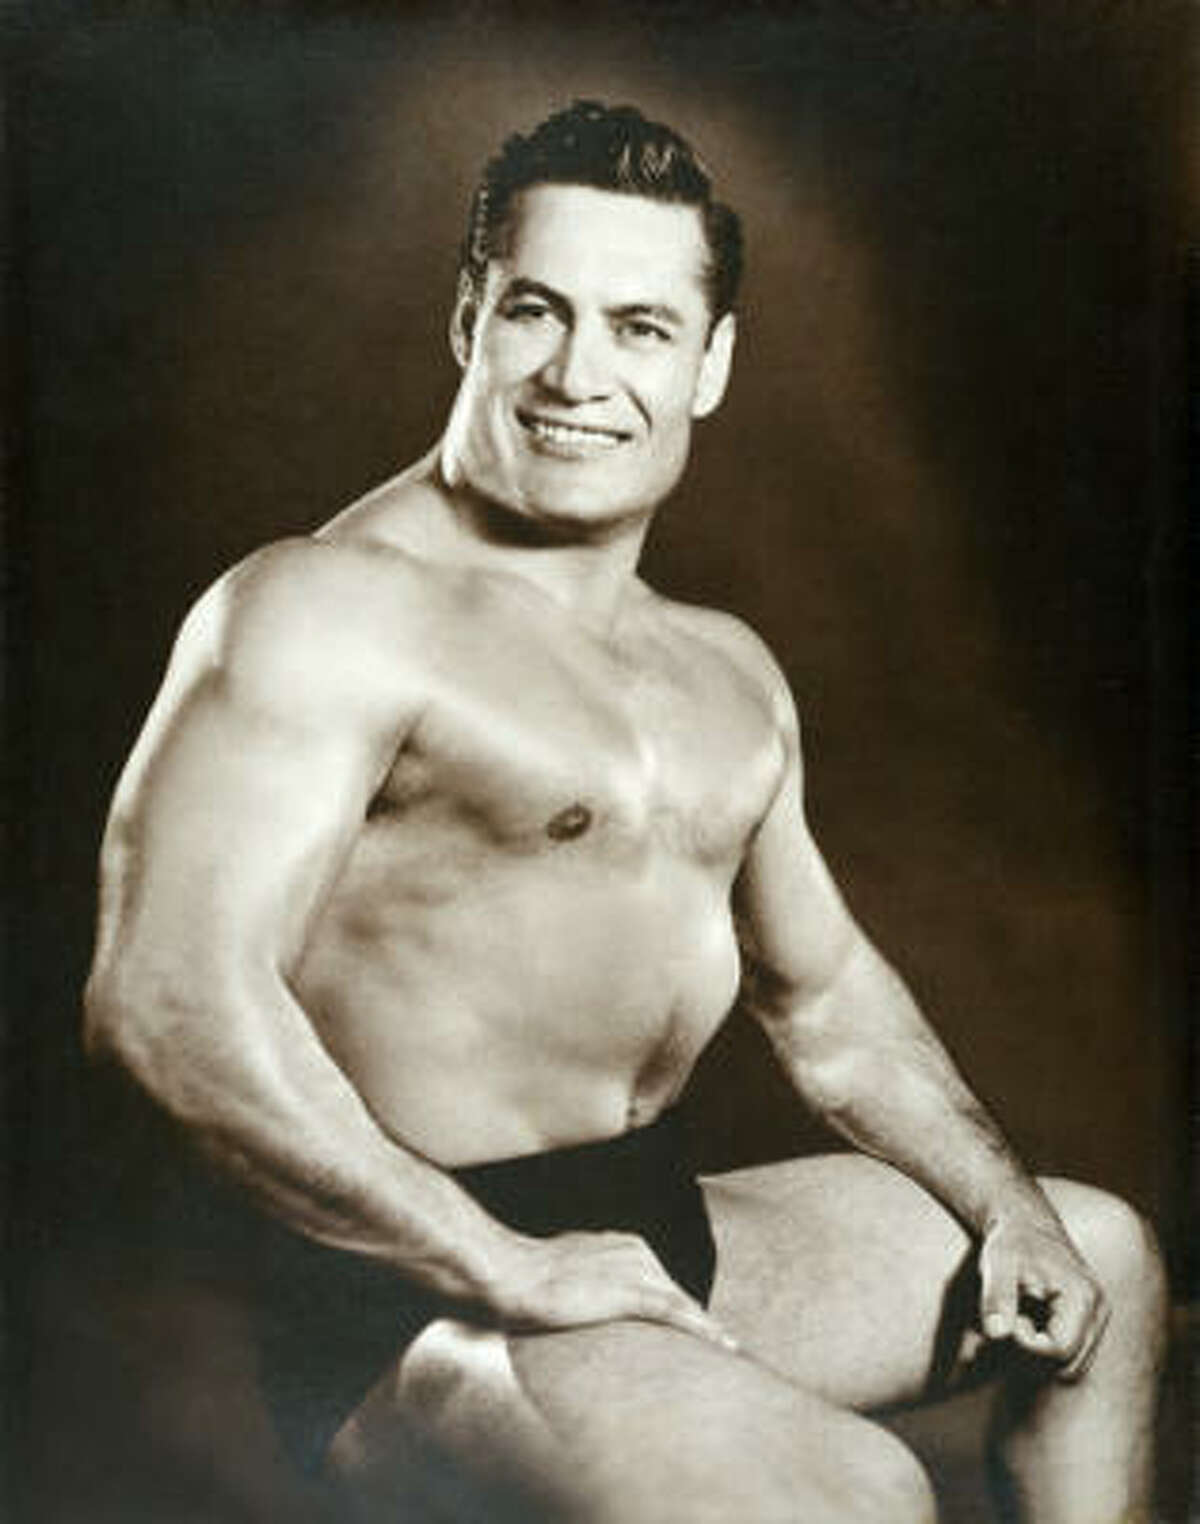 Cyclone Anaya's Mexican Kitchen, a group of Houston-based Tex-Mex restaurants has been sold to the Heritage Restaurant Group. Shown: Jesus Becerra Valencia, the former Mexican wrestler who founded Cyclone Anaya's in Houston in 1966 with his wife, Carolina Berzeny, a beauty queen who was the reigning Miss Houston when they met. His images are part of the design decor at Cyclone Anaya restaurants.